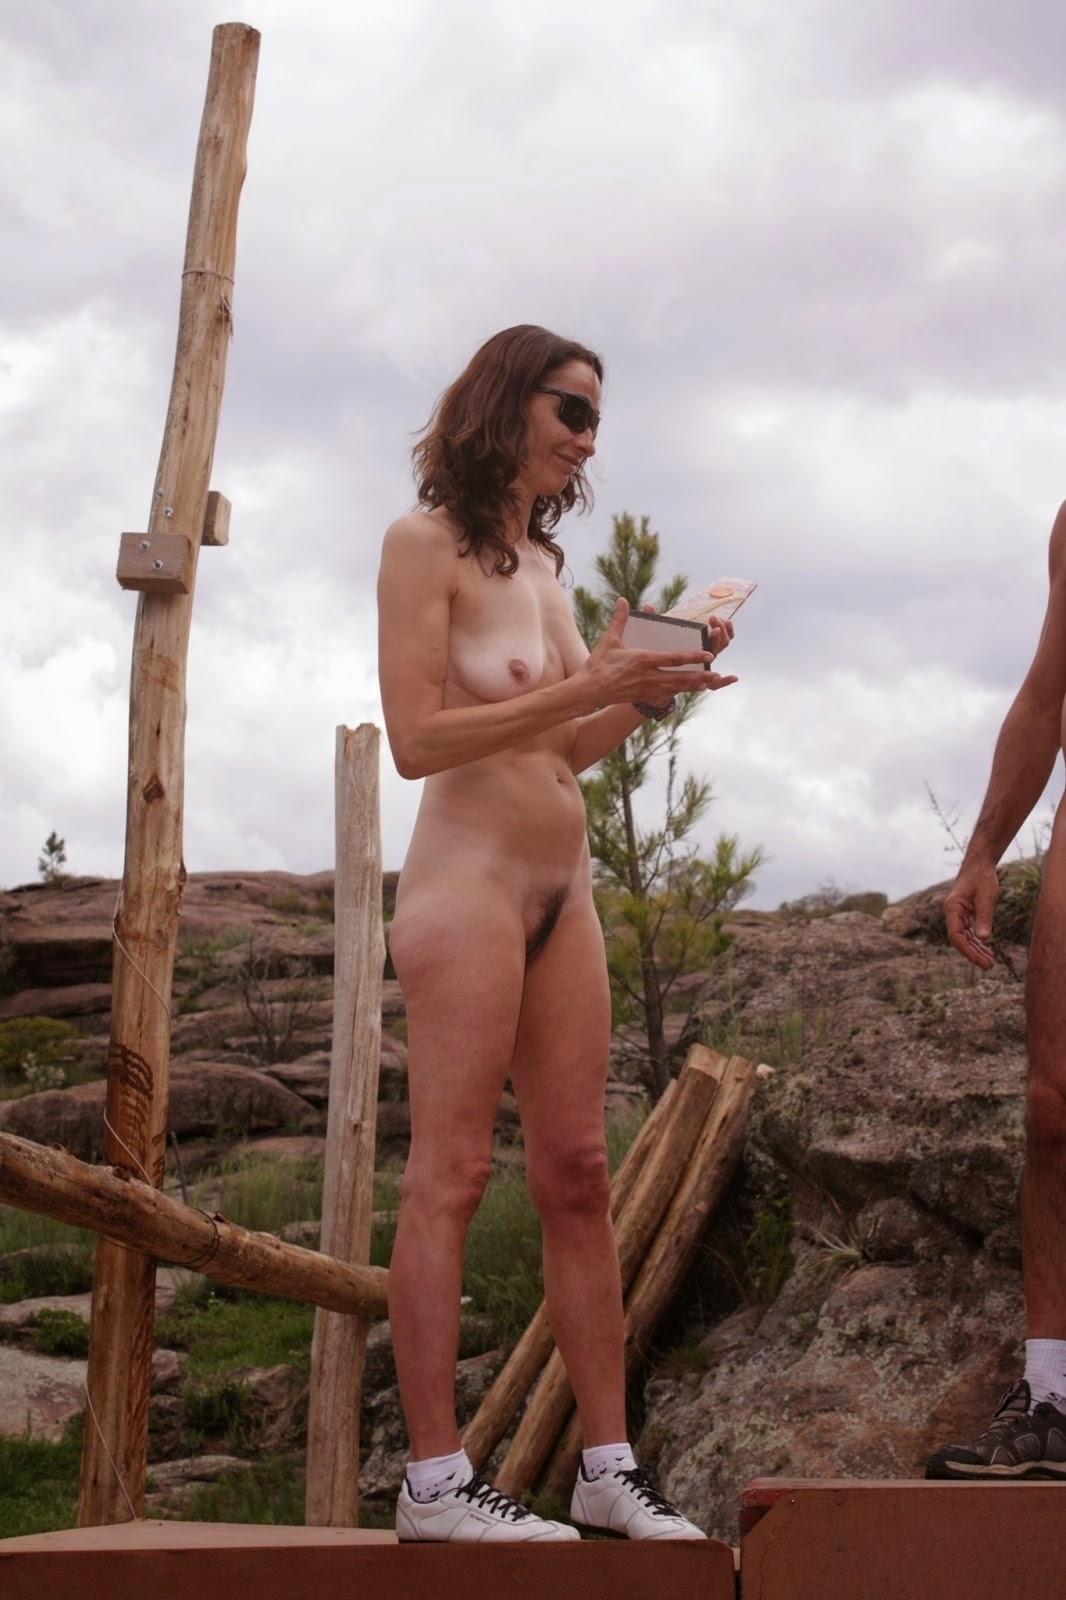 Nudism - Photo - Hq  Nudism In Argentina - 2013-2014 -9605